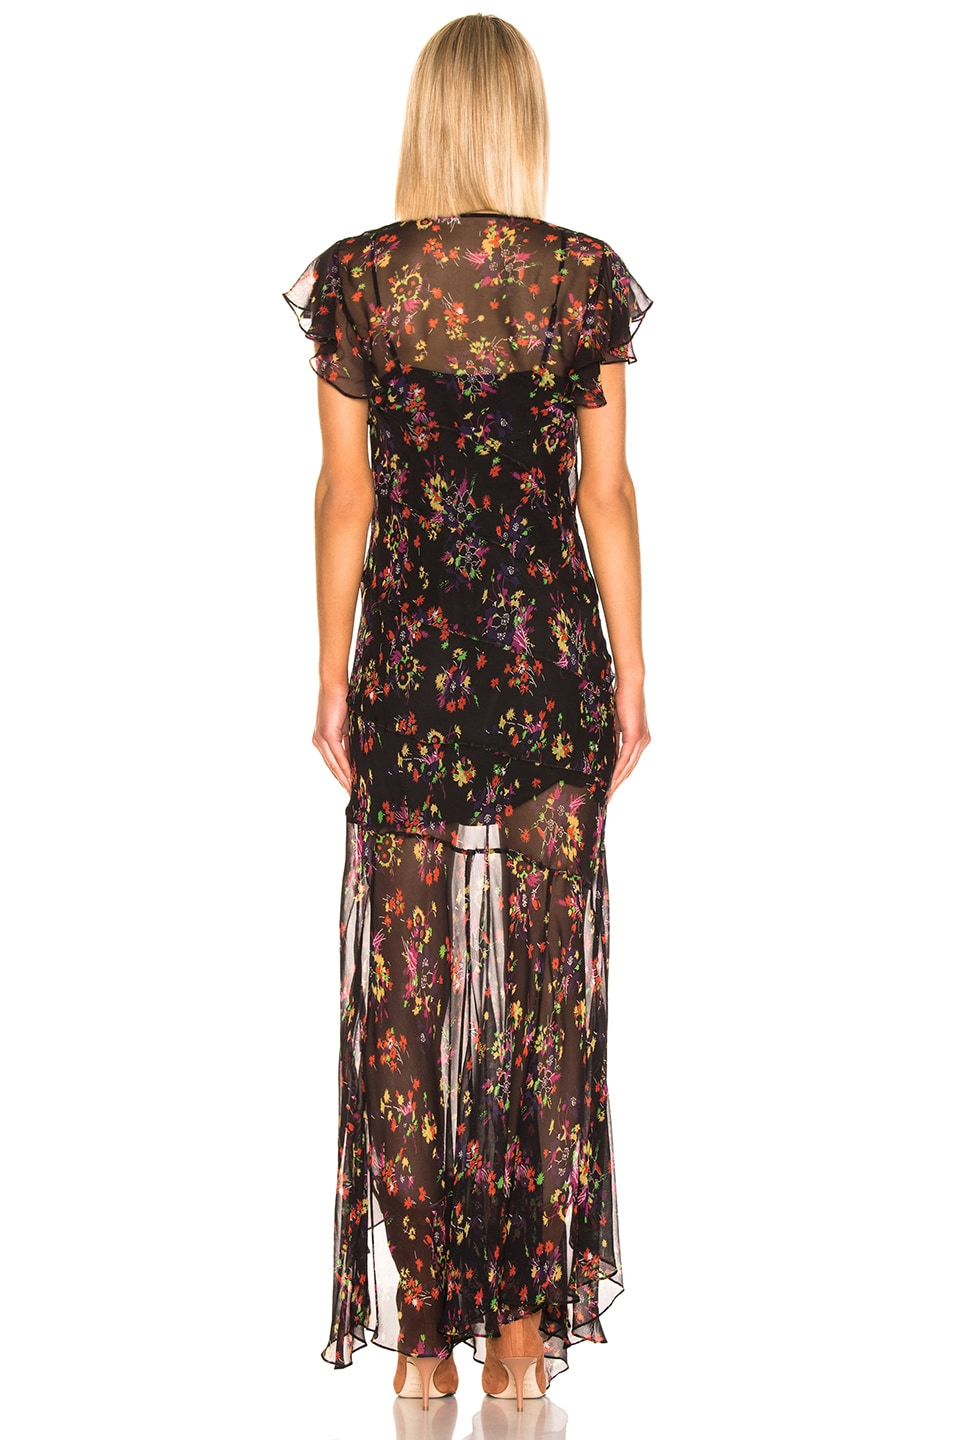 Veronica Beard Kemper Dress Black Multi outlet